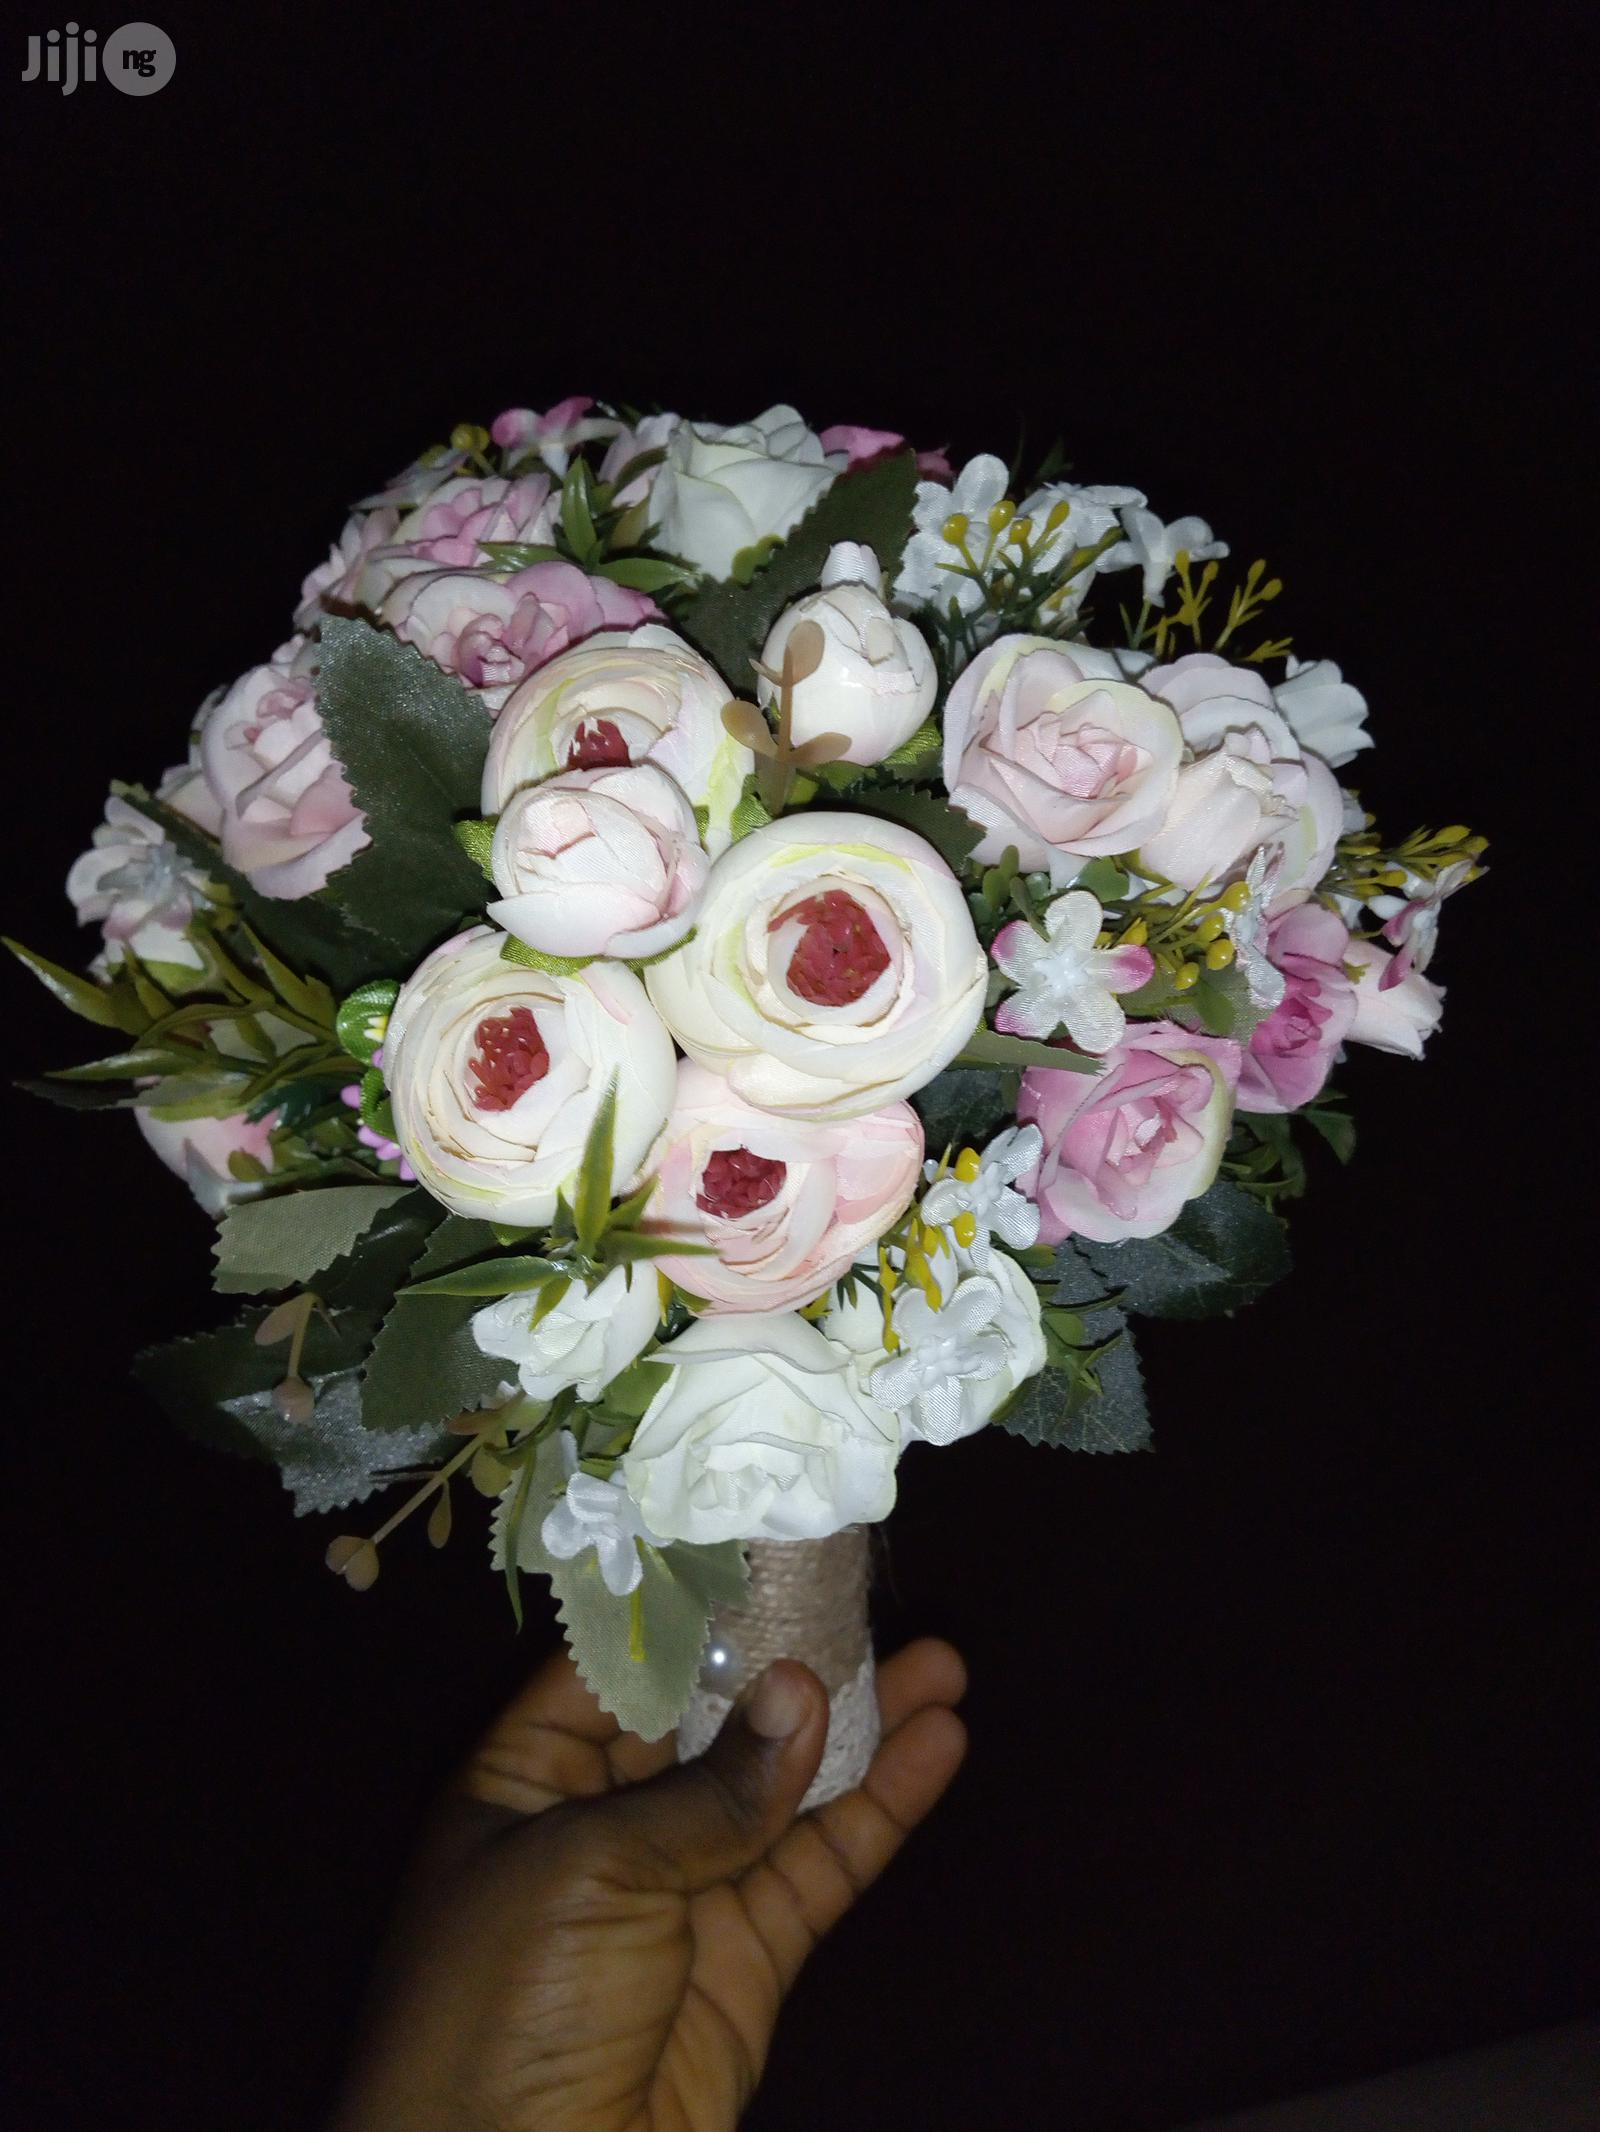 Classy Wedding Bouquets At Affordable Prices